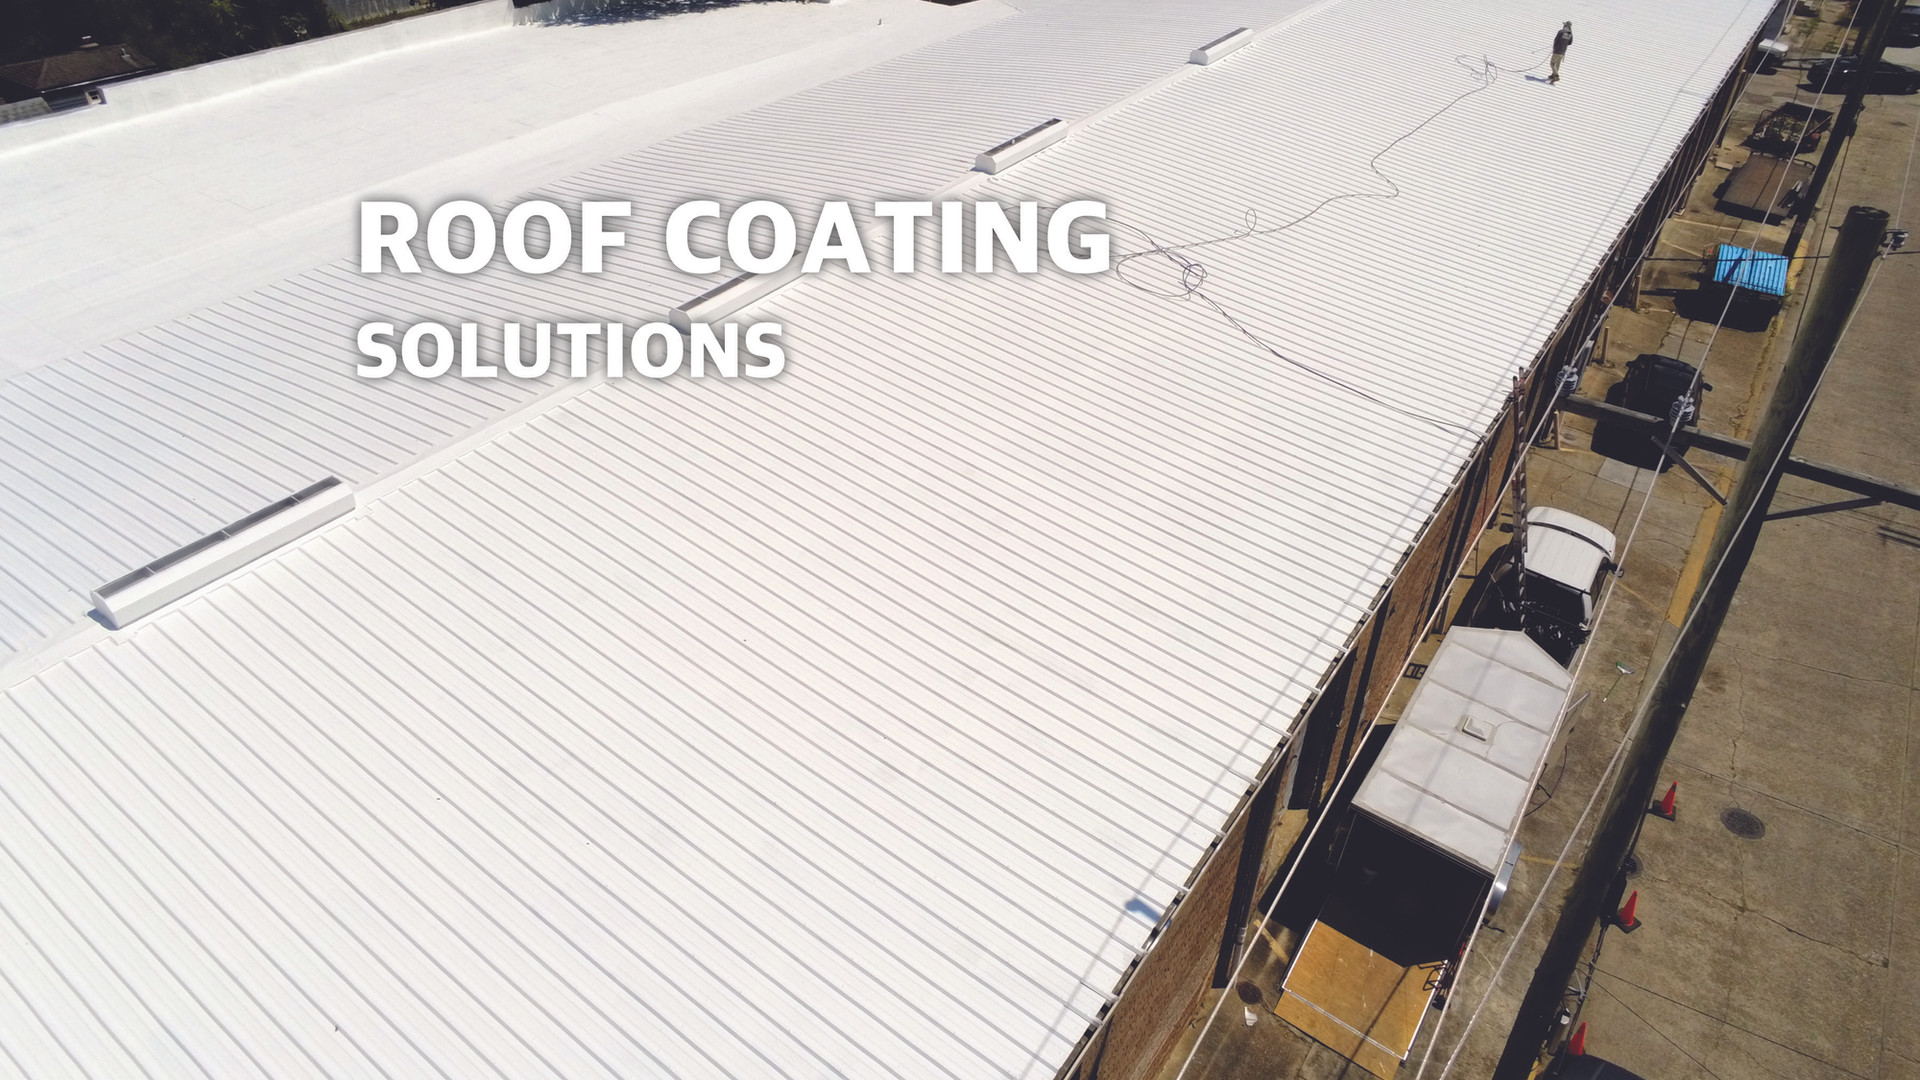 ROOF COATING THE NEXT ENERGY2.jpg